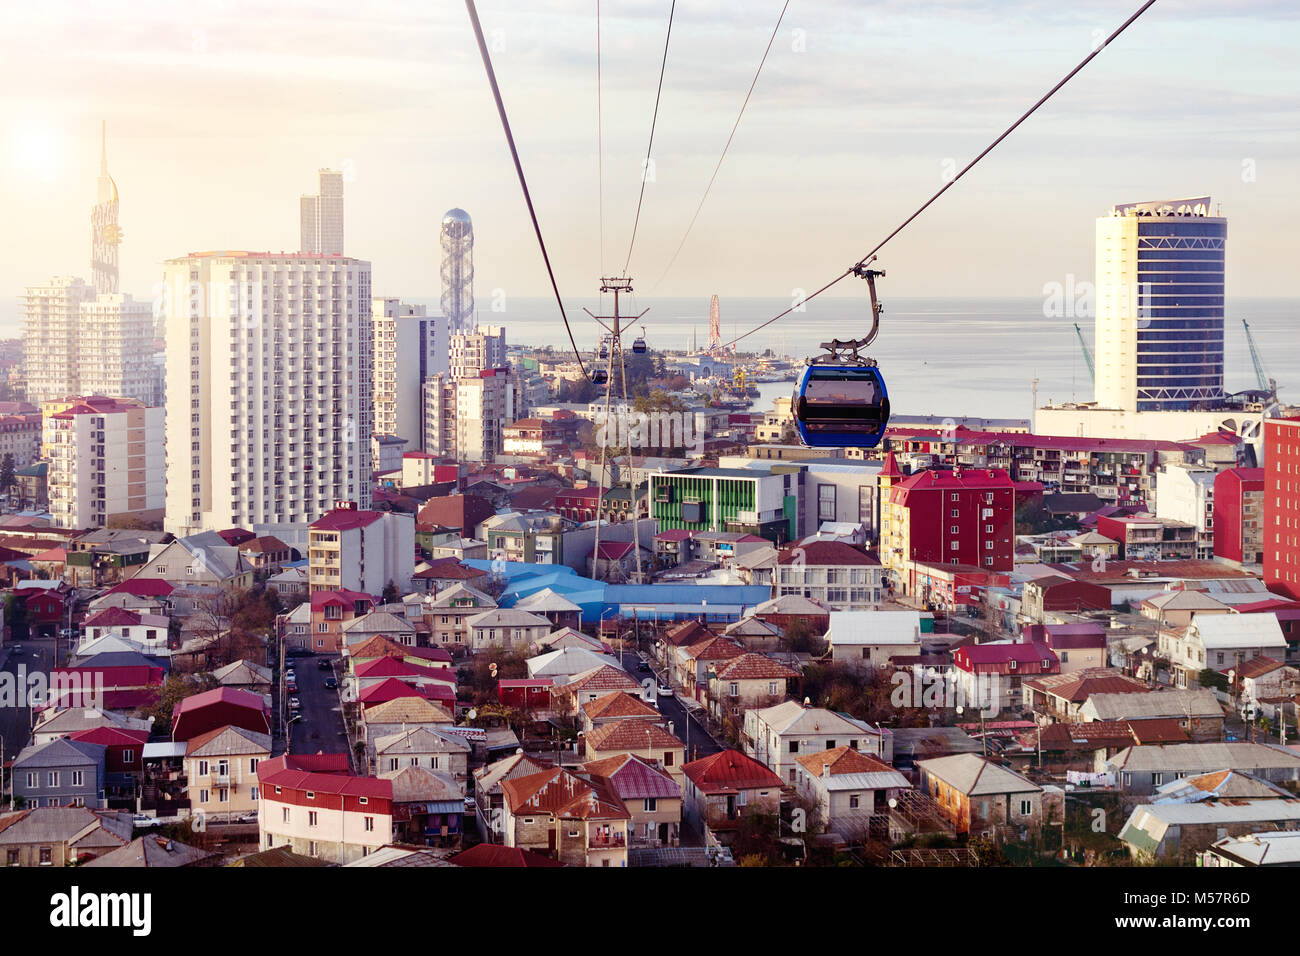 Aerial cableway above city roofs of Batumi, Georgia. Urban landscape with high-rise and ordinary single storey houses - Stock Image